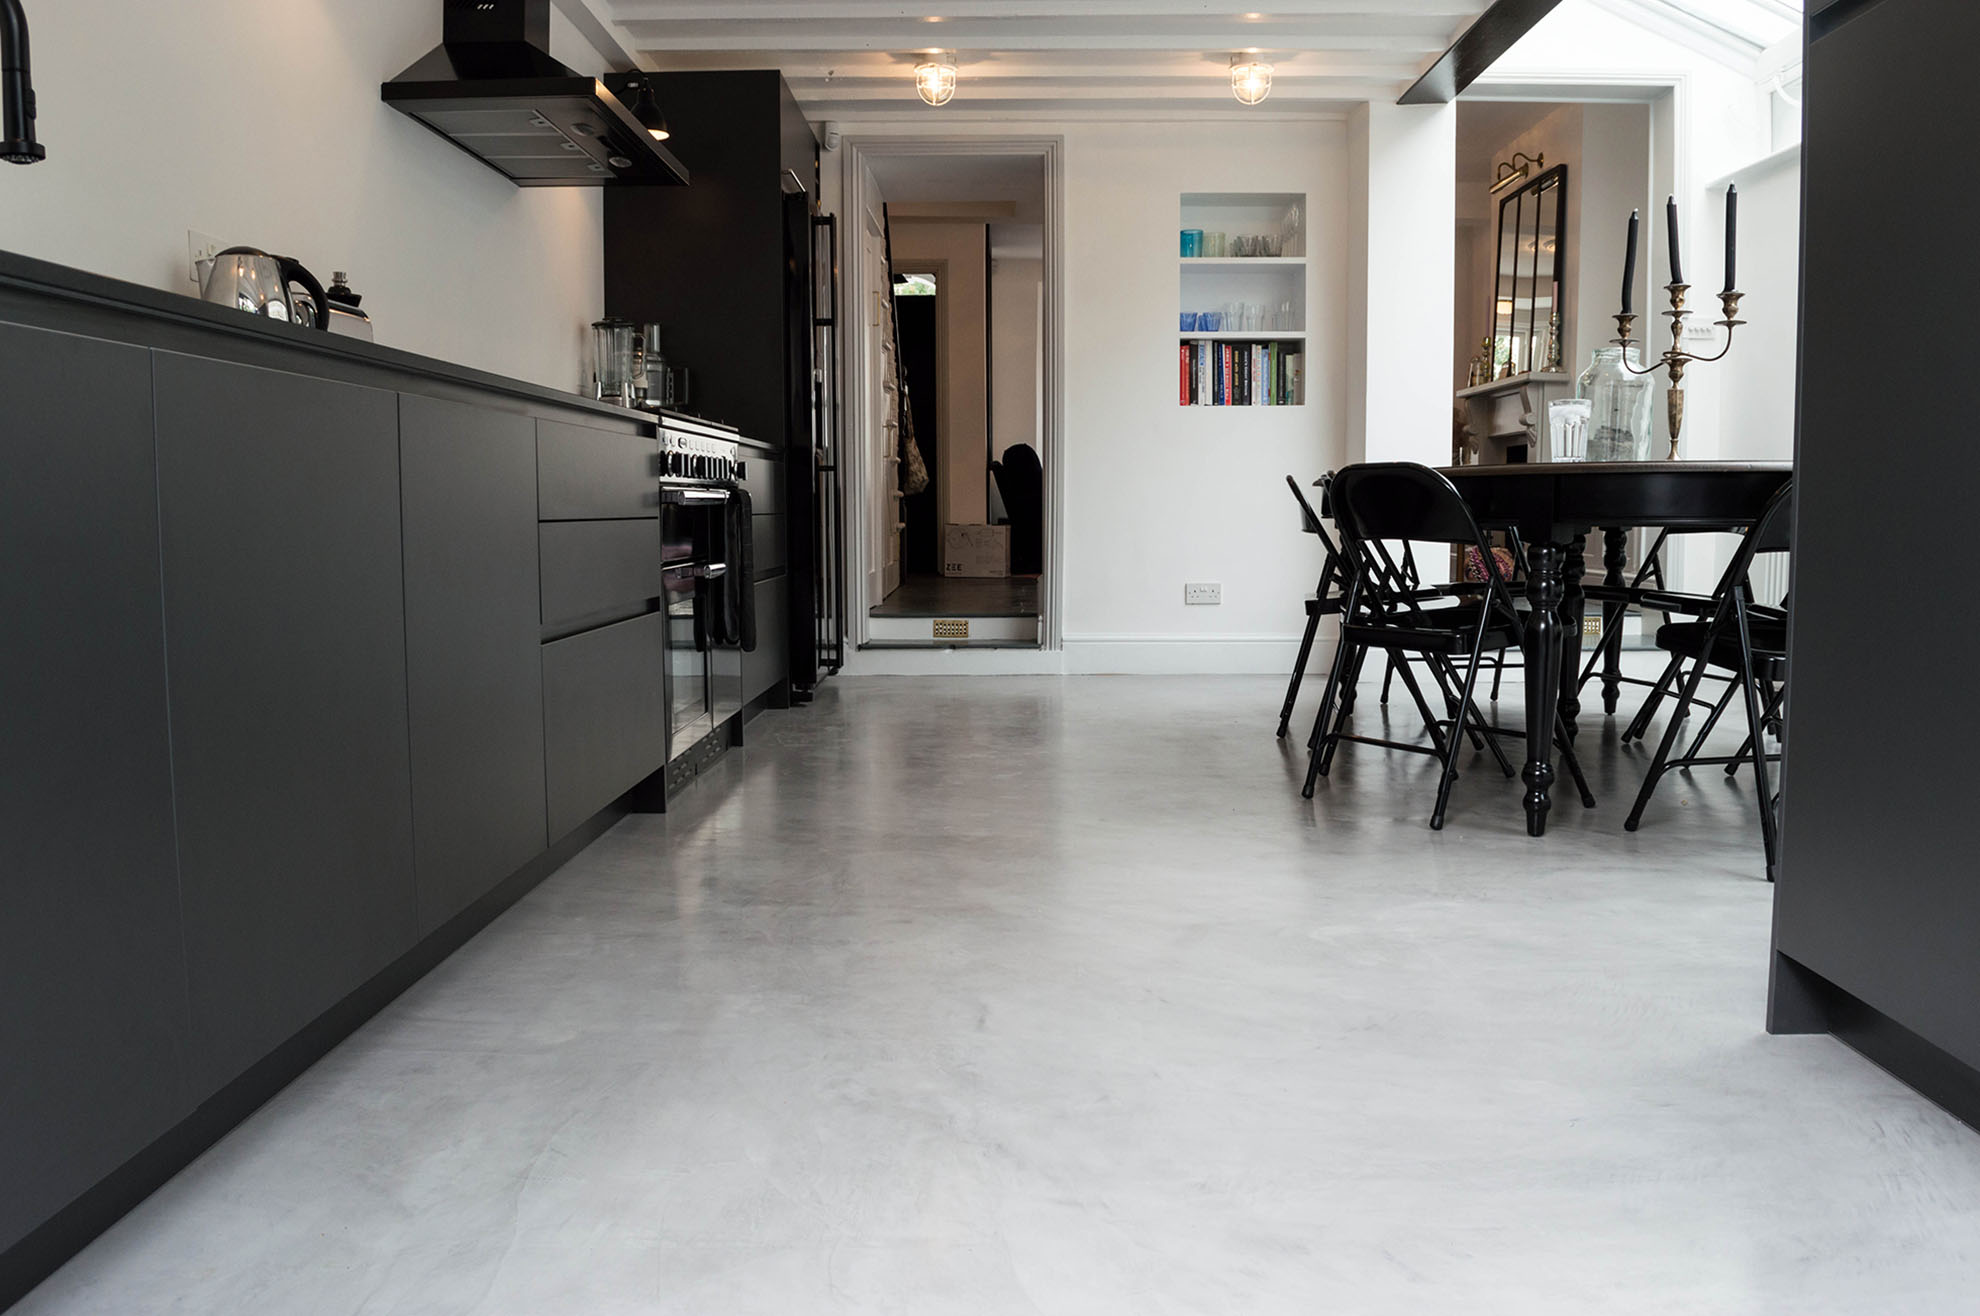 Fußboden Küche Pvc Micro Cement: Redefining The Floor, With Finish And Décor